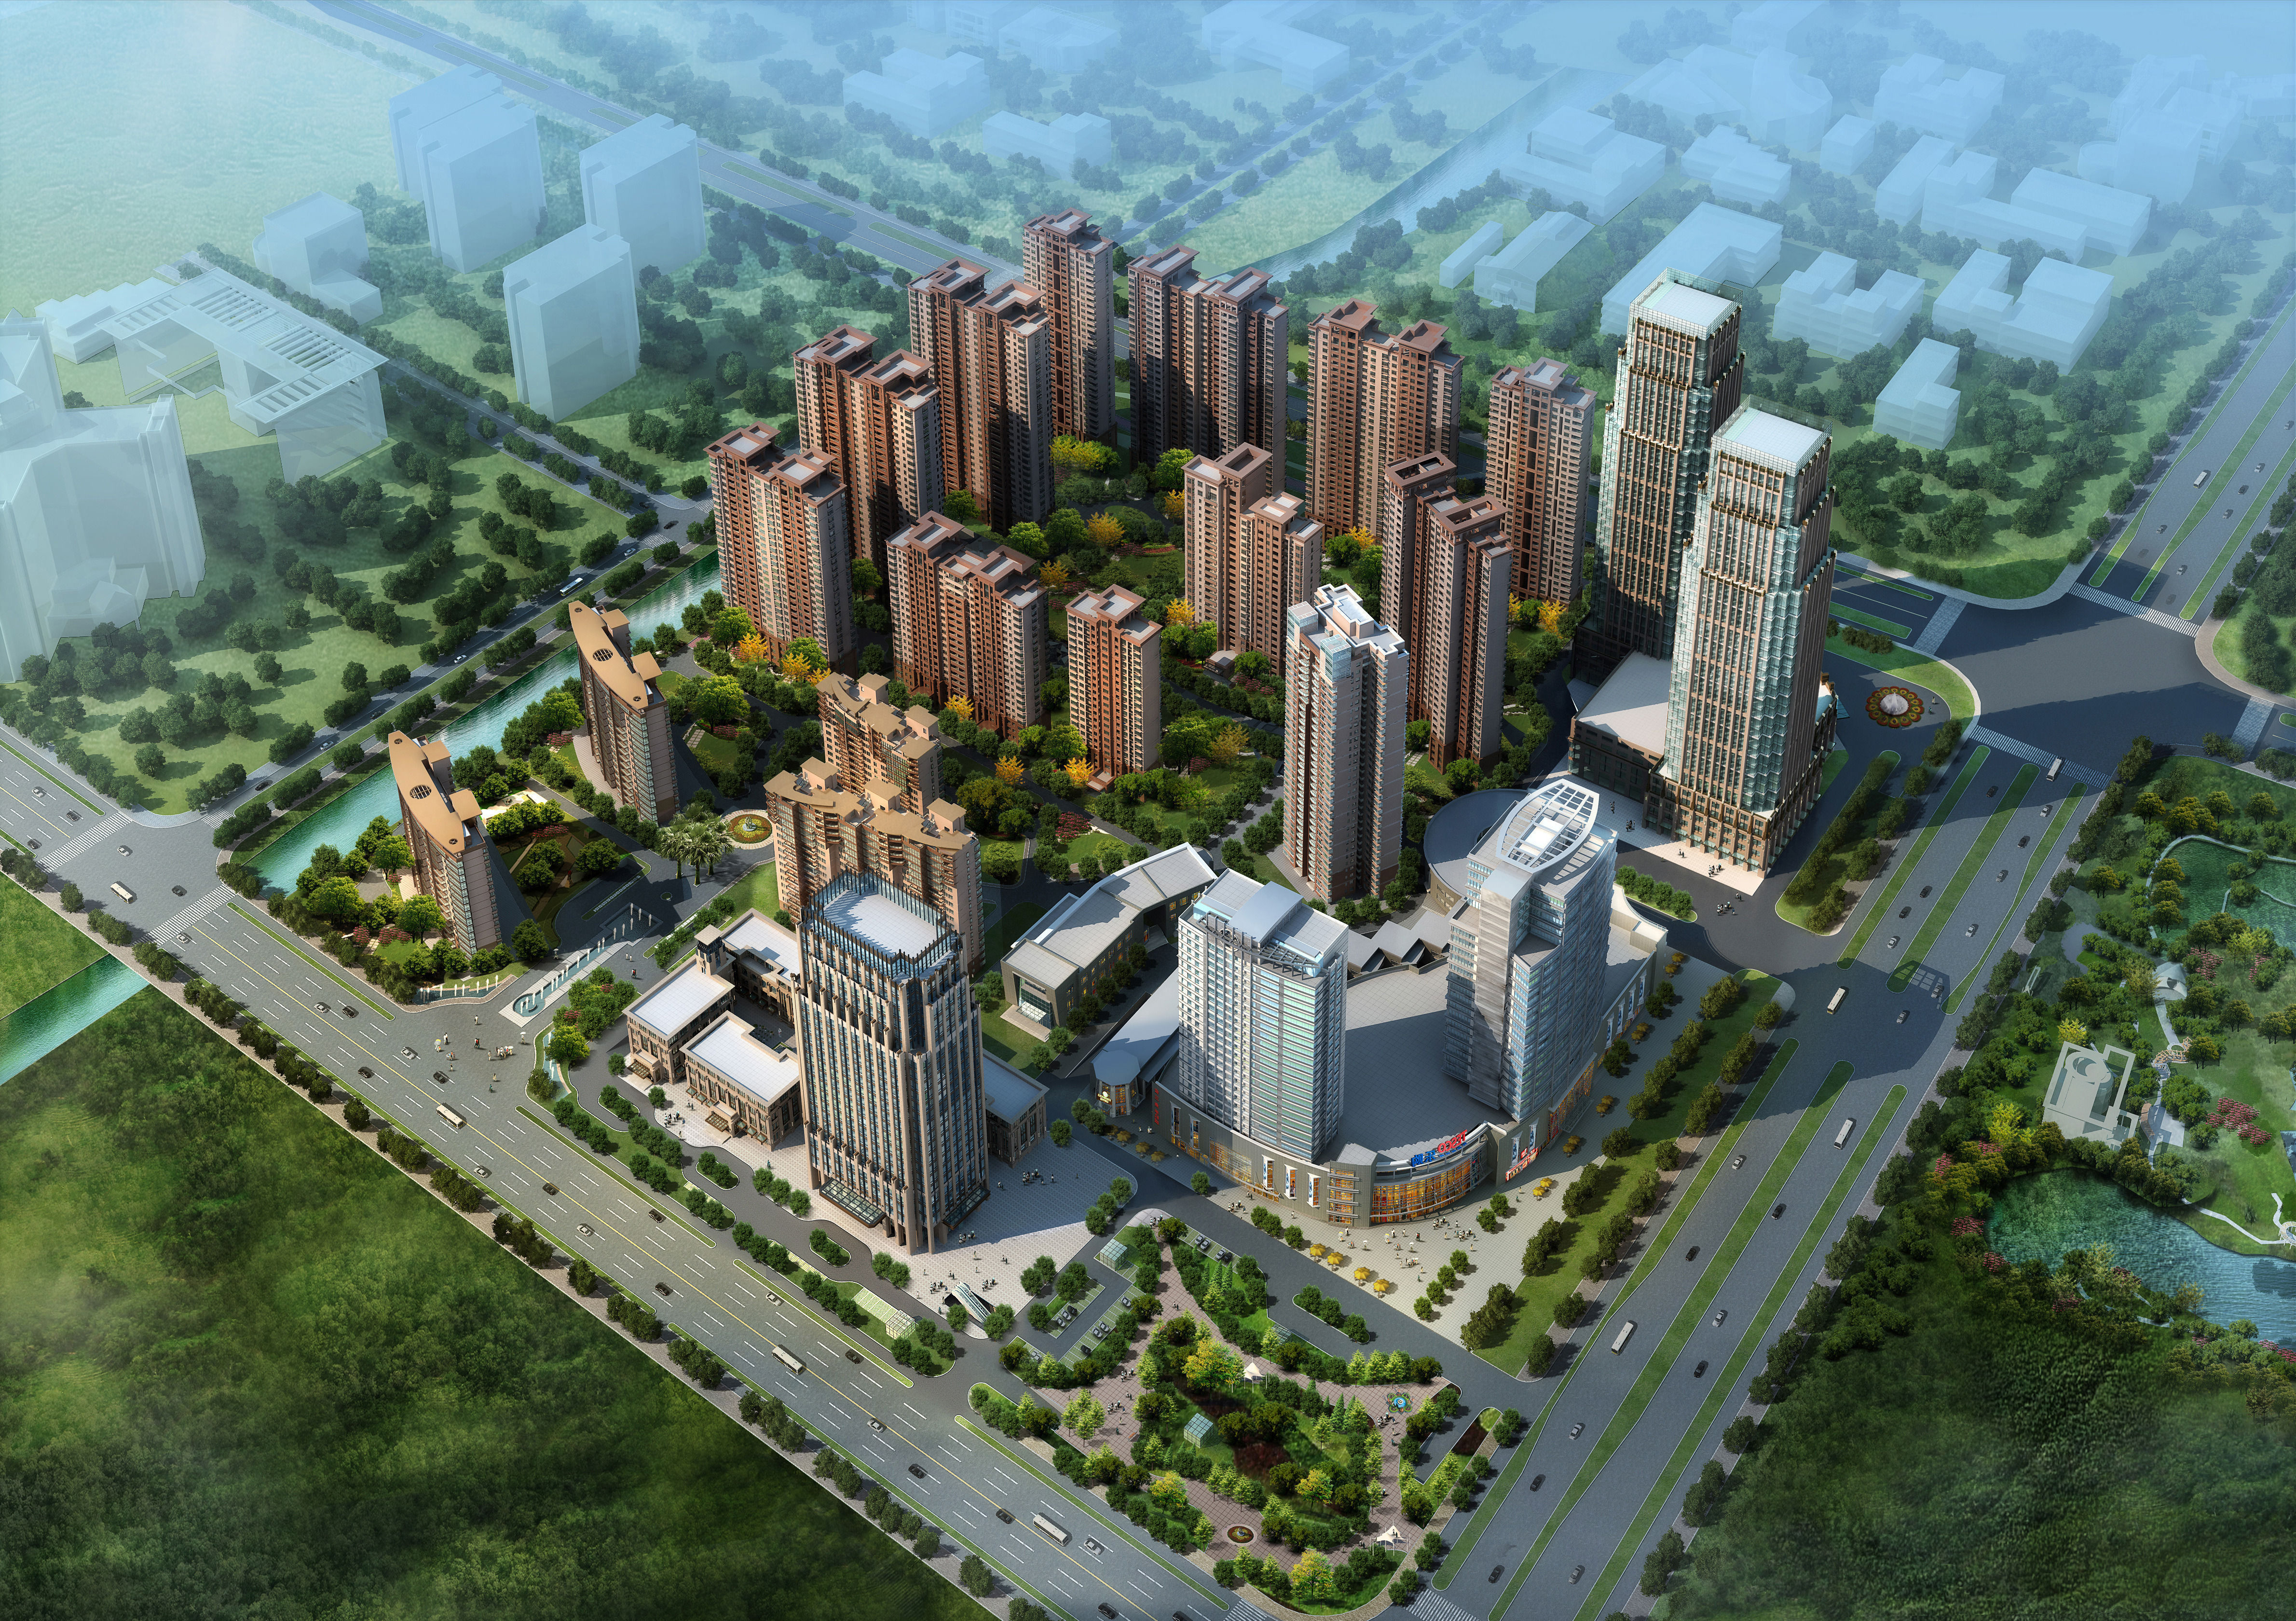 City Commercial And Residential Building Design 029 3d Model Max